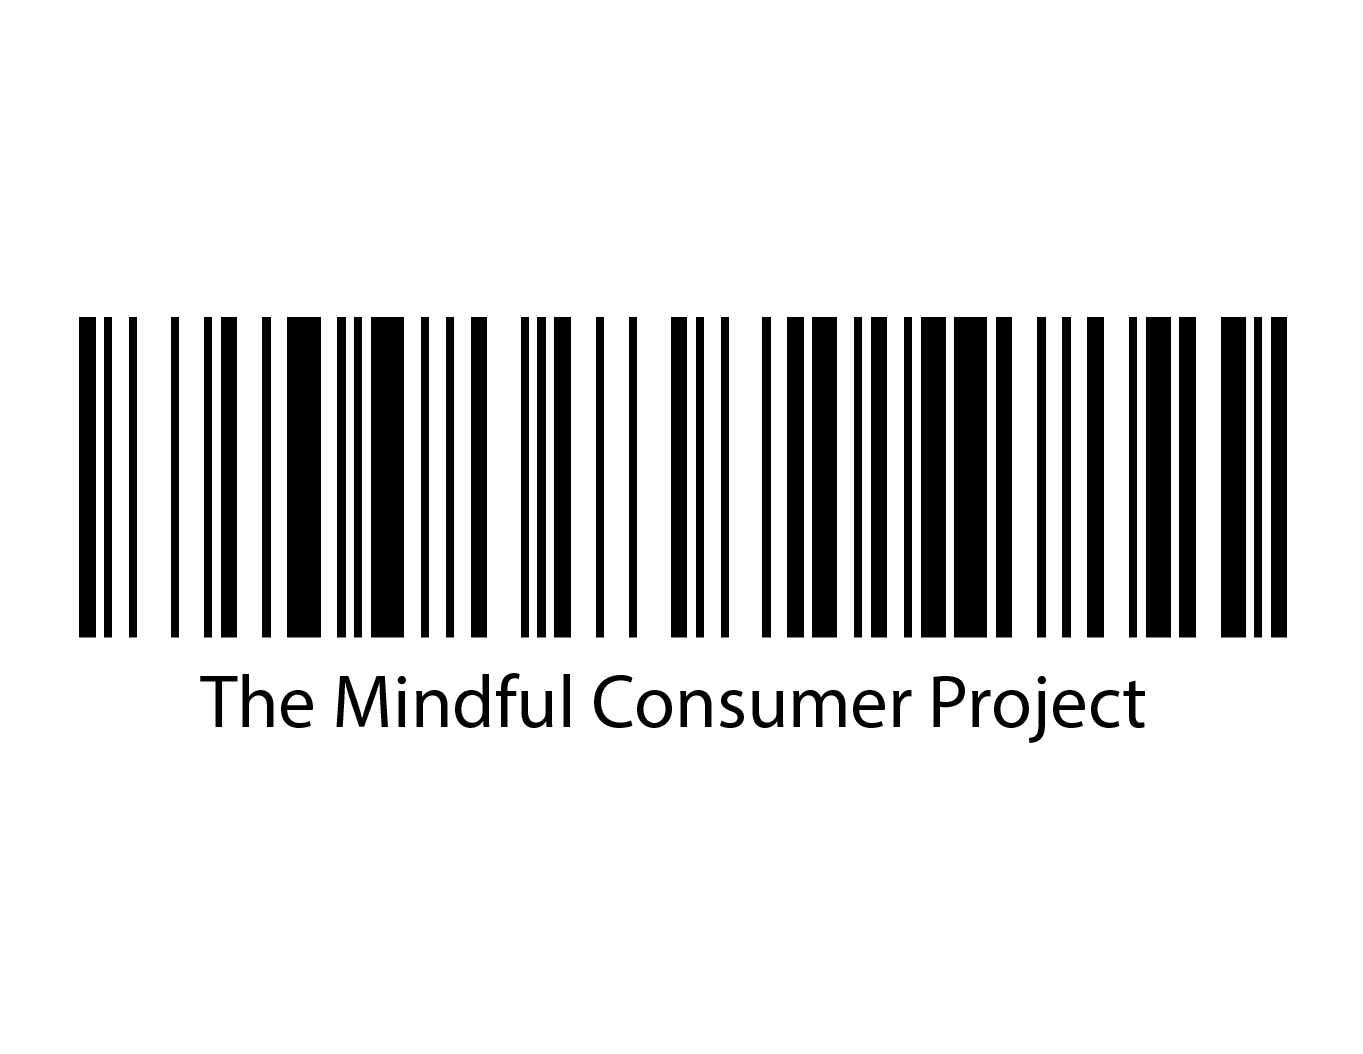 The Mindful Consumer Project